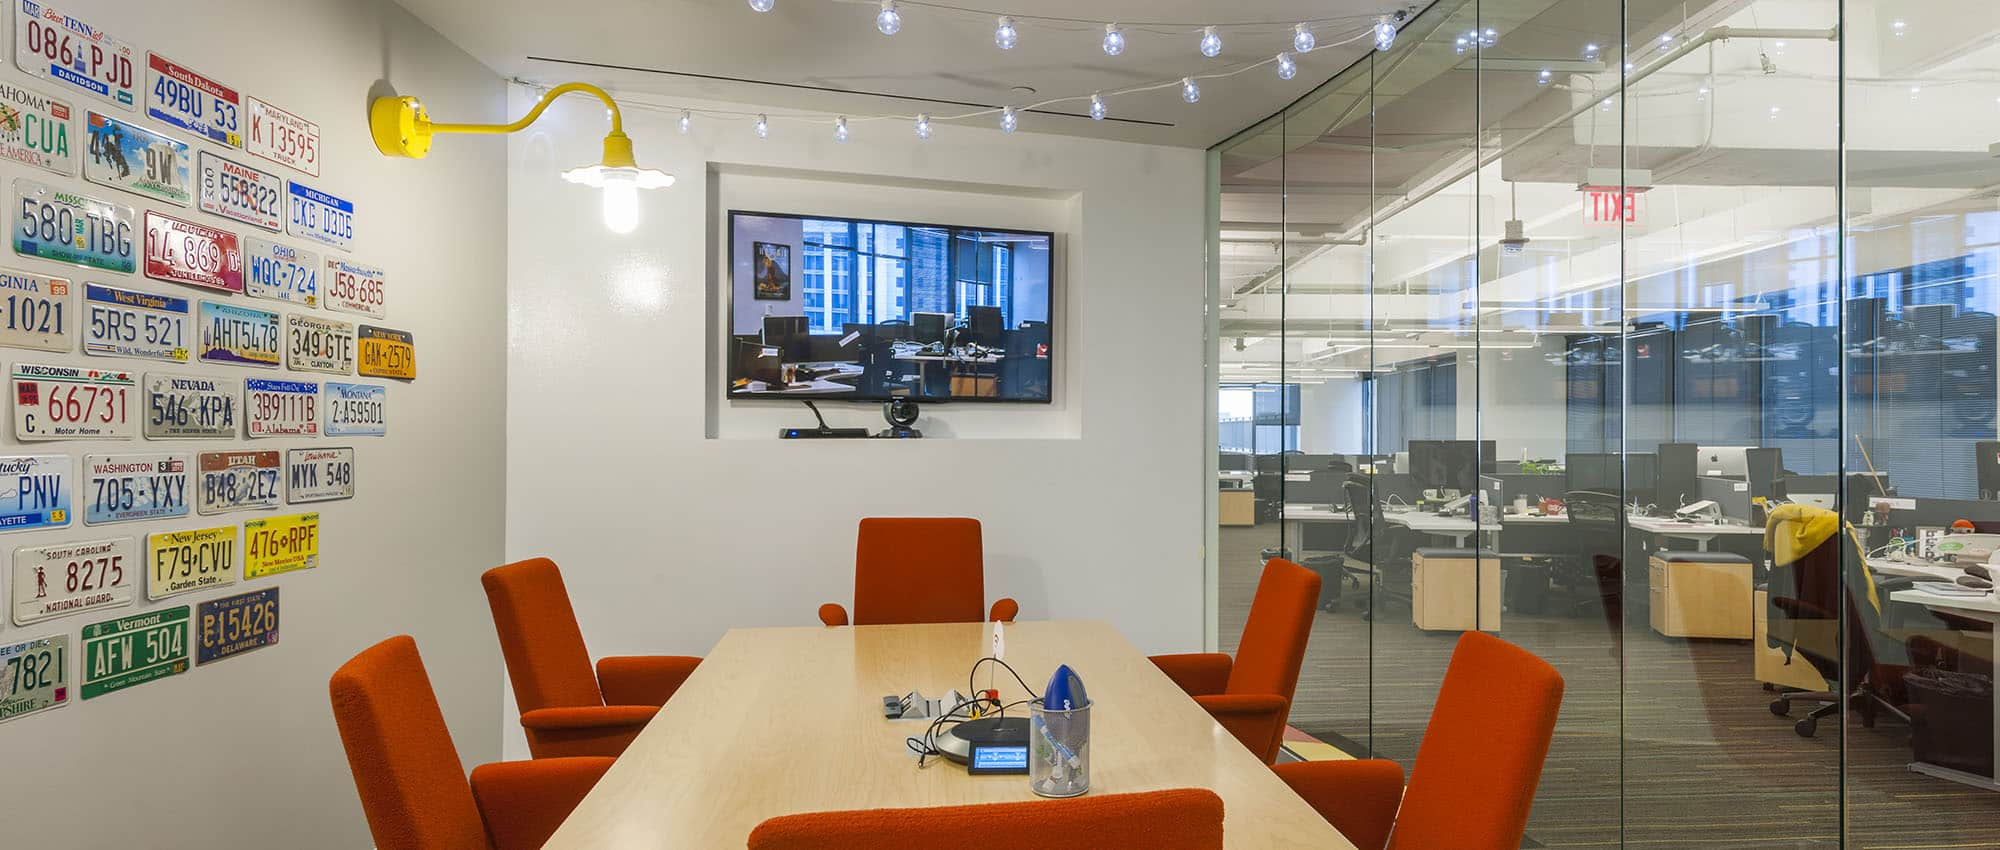 301 Congress Conference Room - Retail Me Not